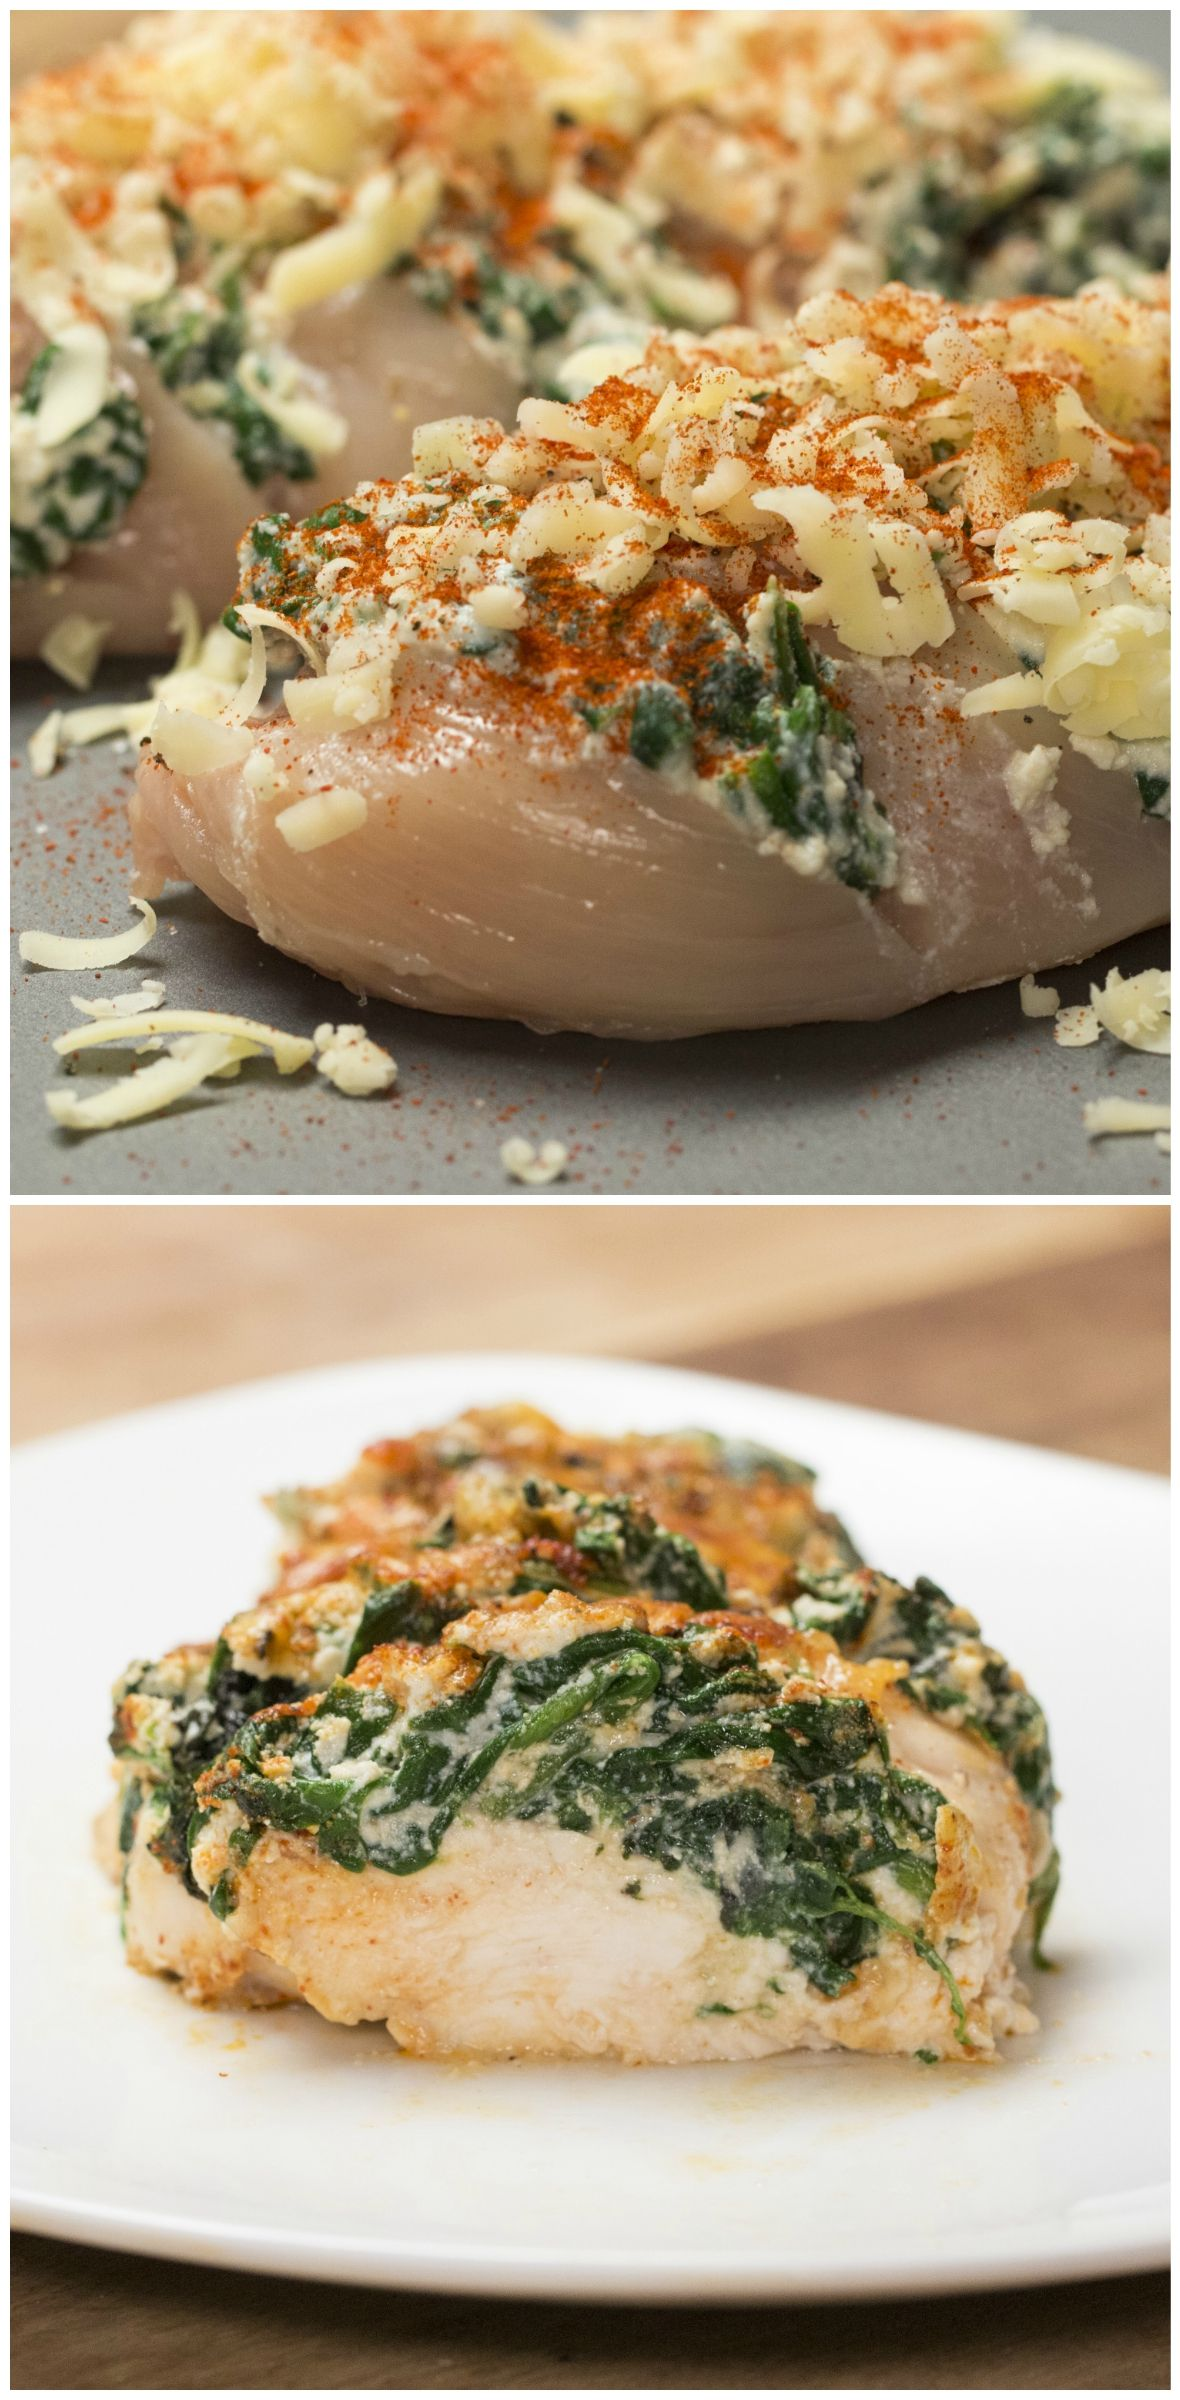 Here S What You Ll Need Splash Of Oil Fresh Spinach Ricotta Cheese 2 Chicken Breasts Cheddar Cheese Paprika Salt Pepper